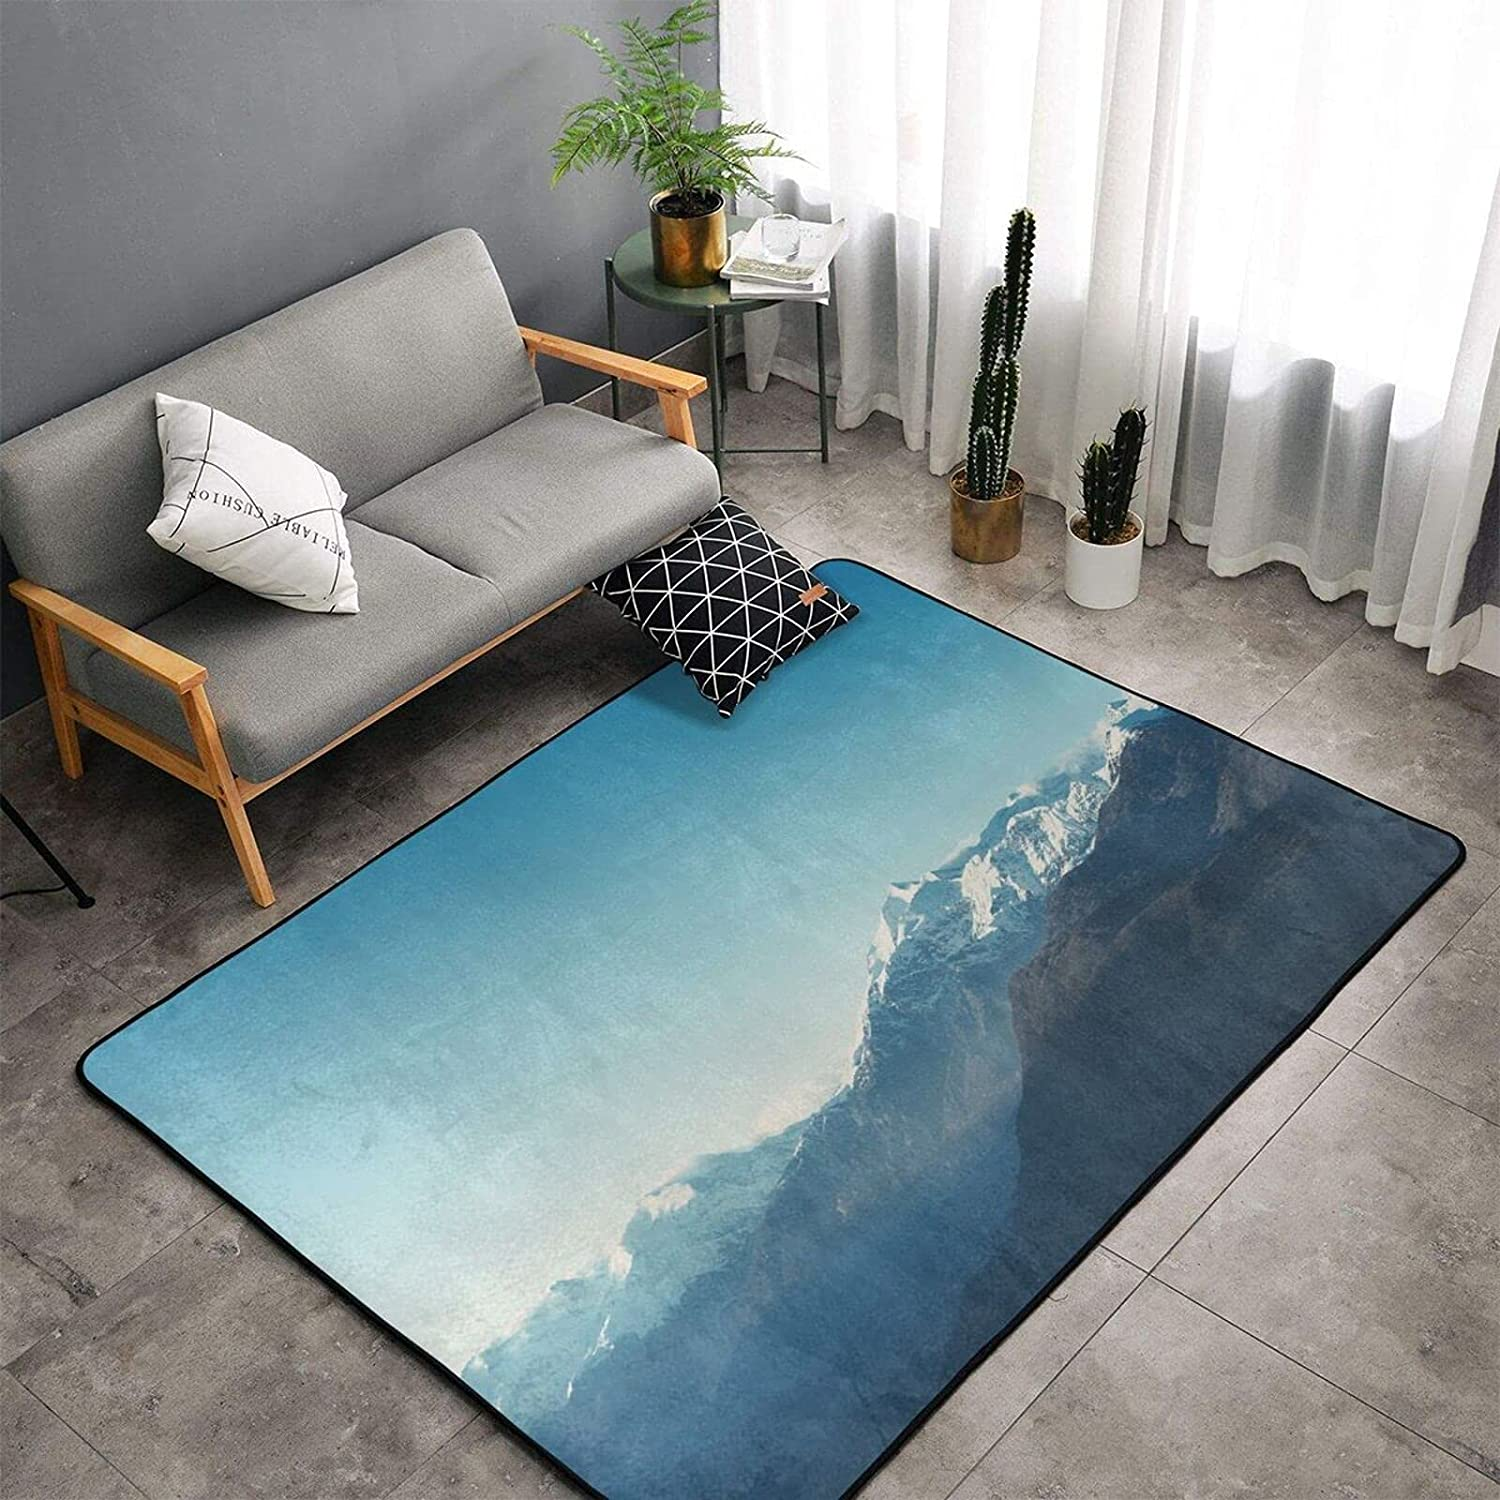 Kinedon Carpet Non-Slip Area Max 76% OFF Rugs low-pricing Camping Carpets Soft Bedroom K